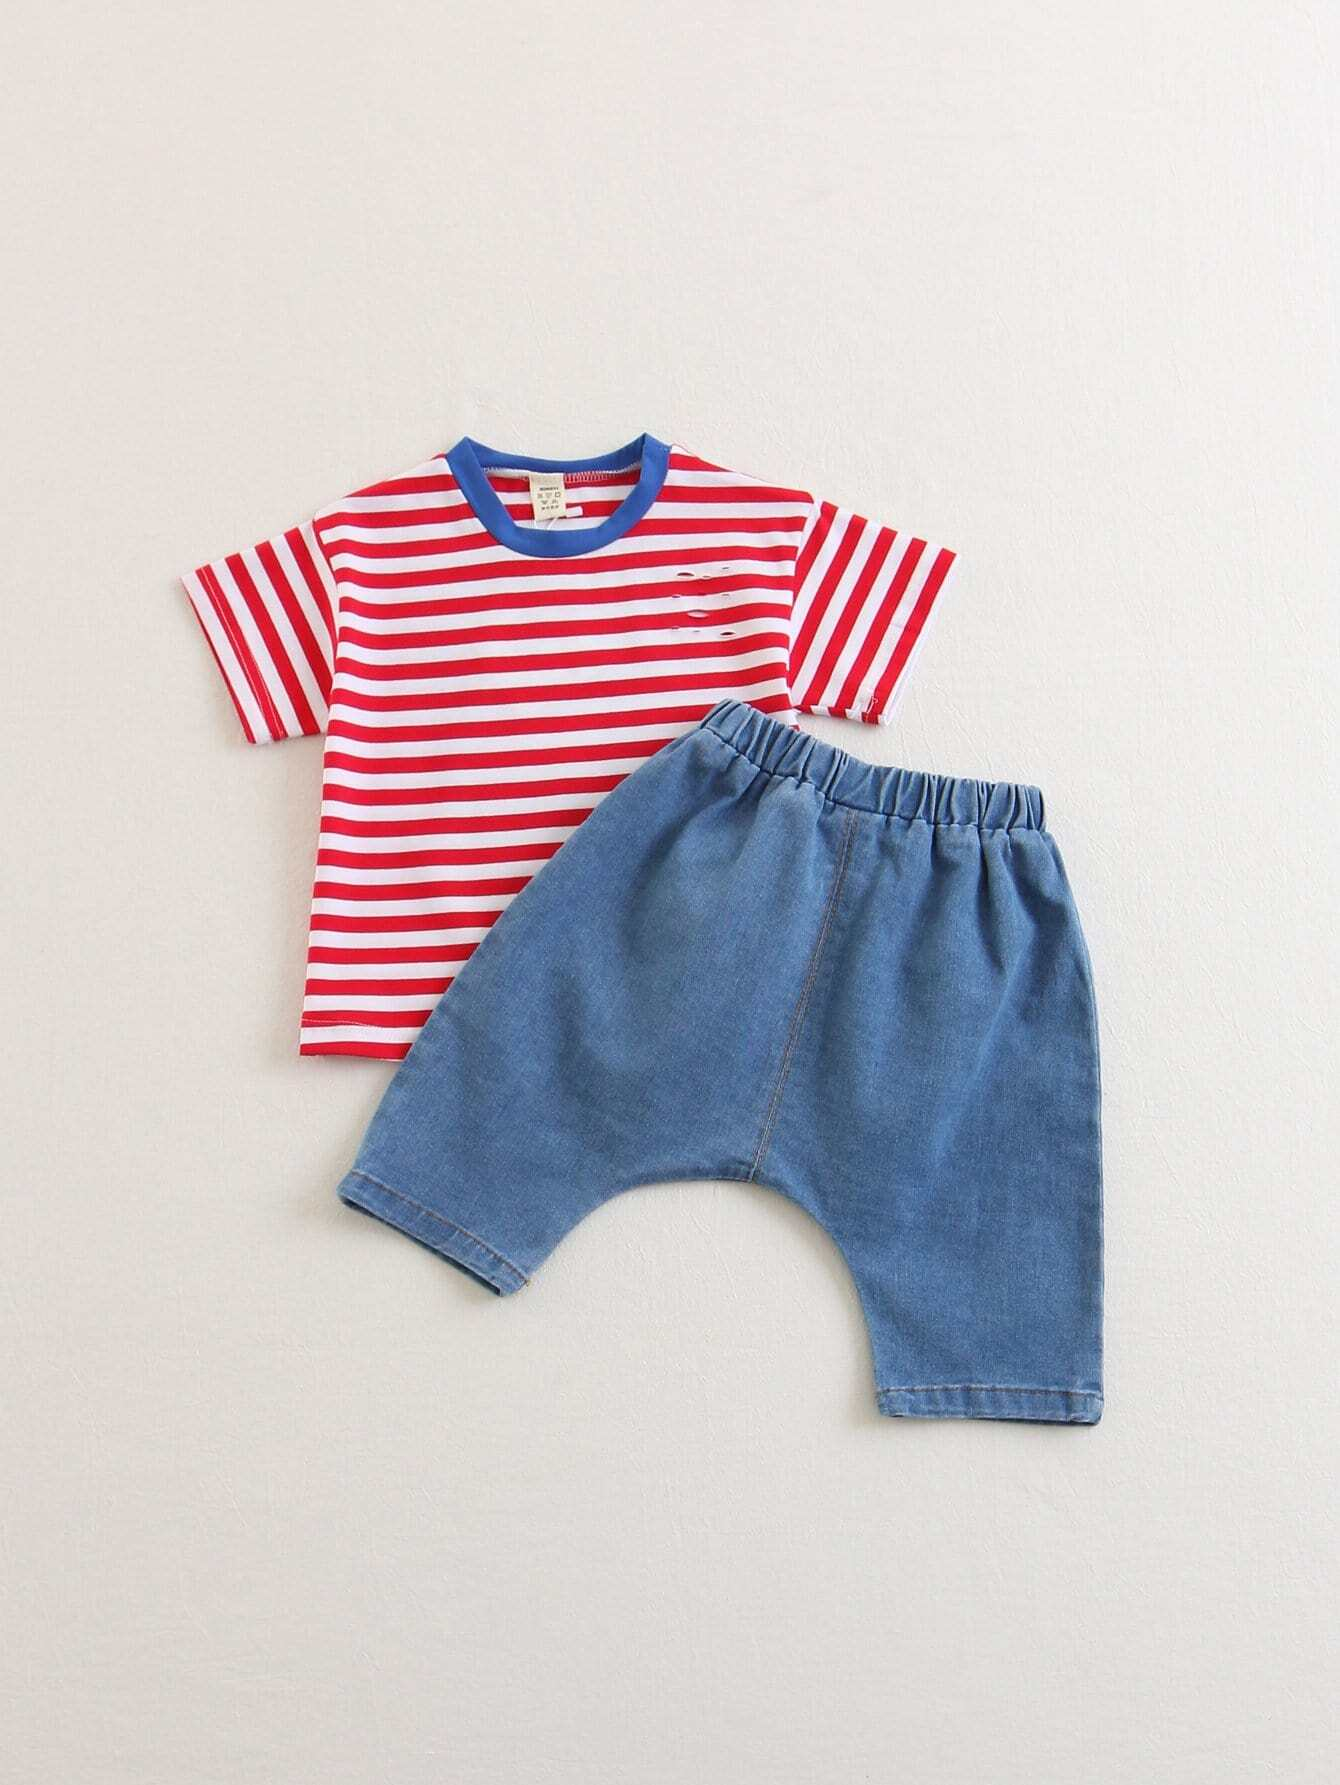 Boys Letter Print Striped Tee With Pants kids letter print sleeveless tee with tropical print pants